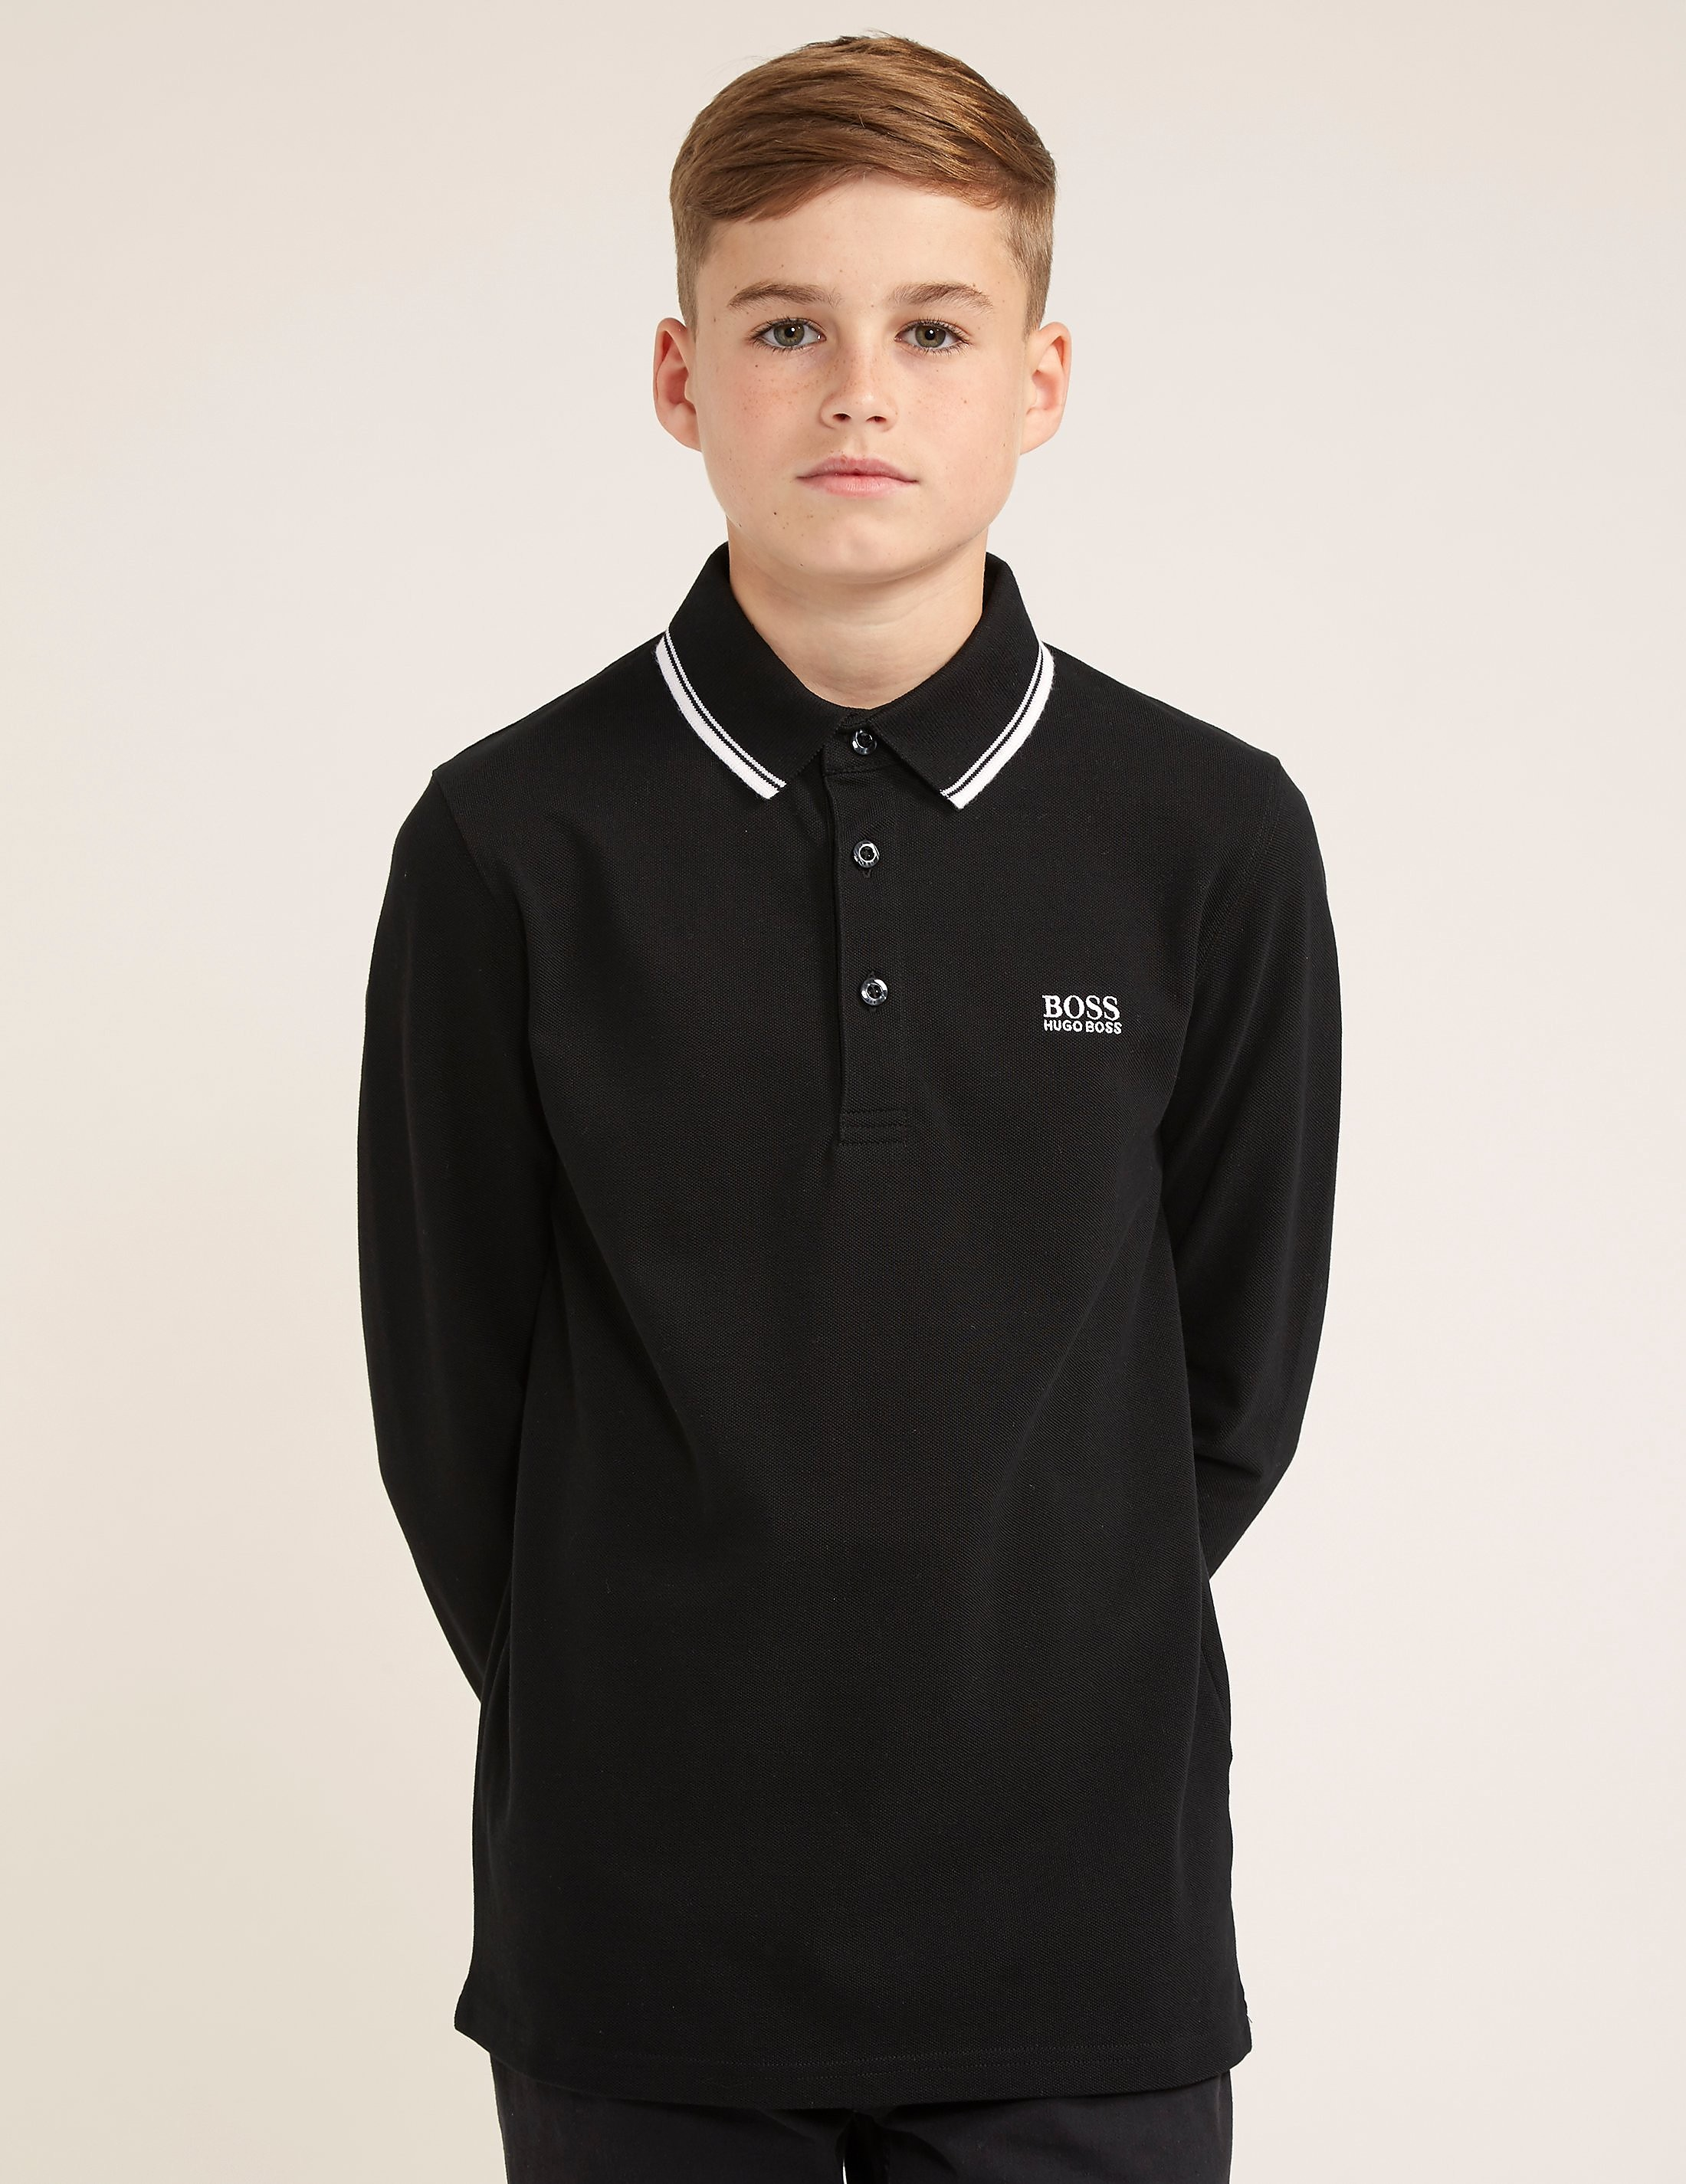 BOSS Basic Long Sleeve Polo Shirt